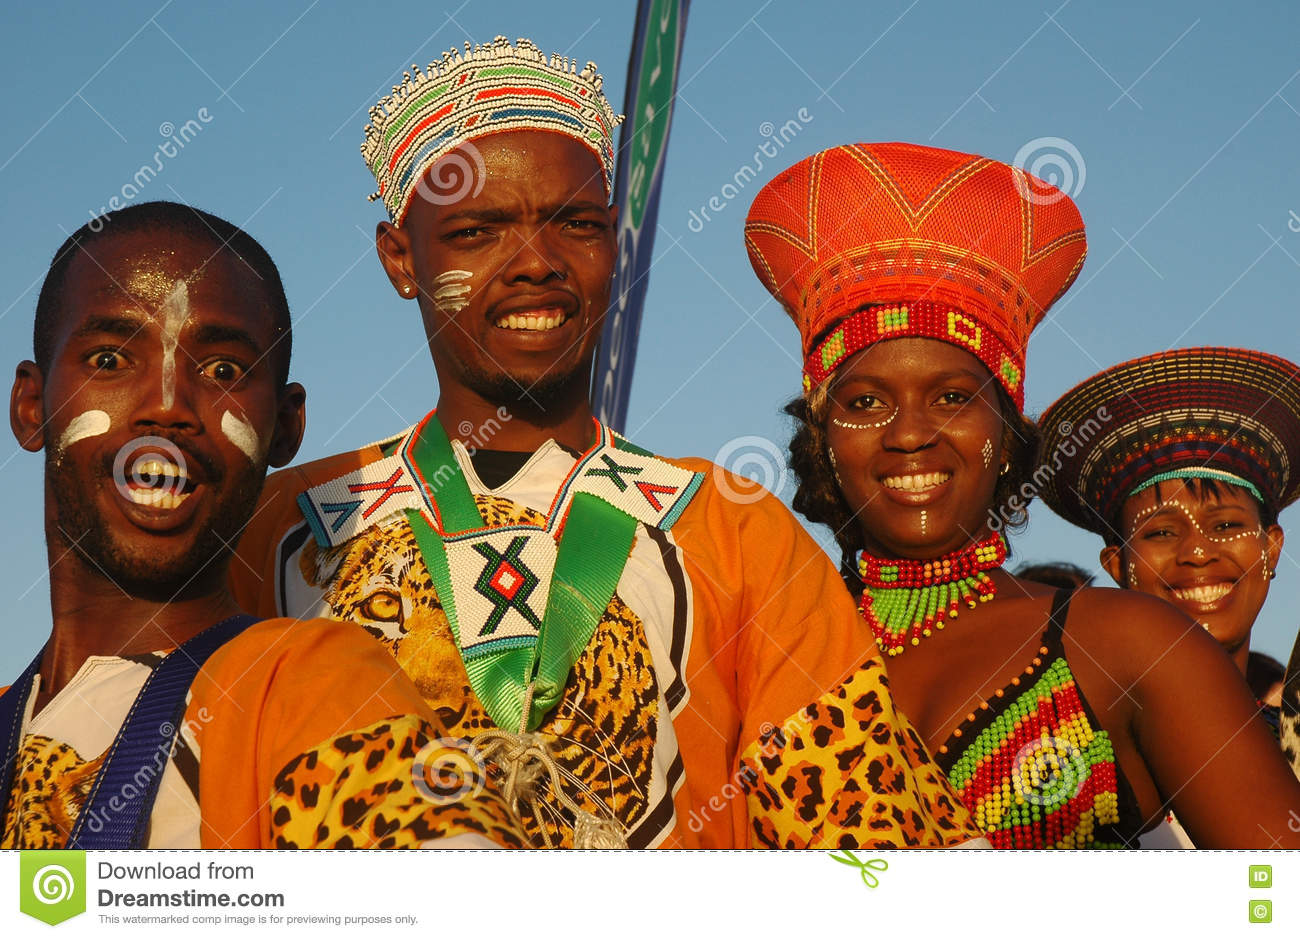 Personnes traditionnelles sud-africaines